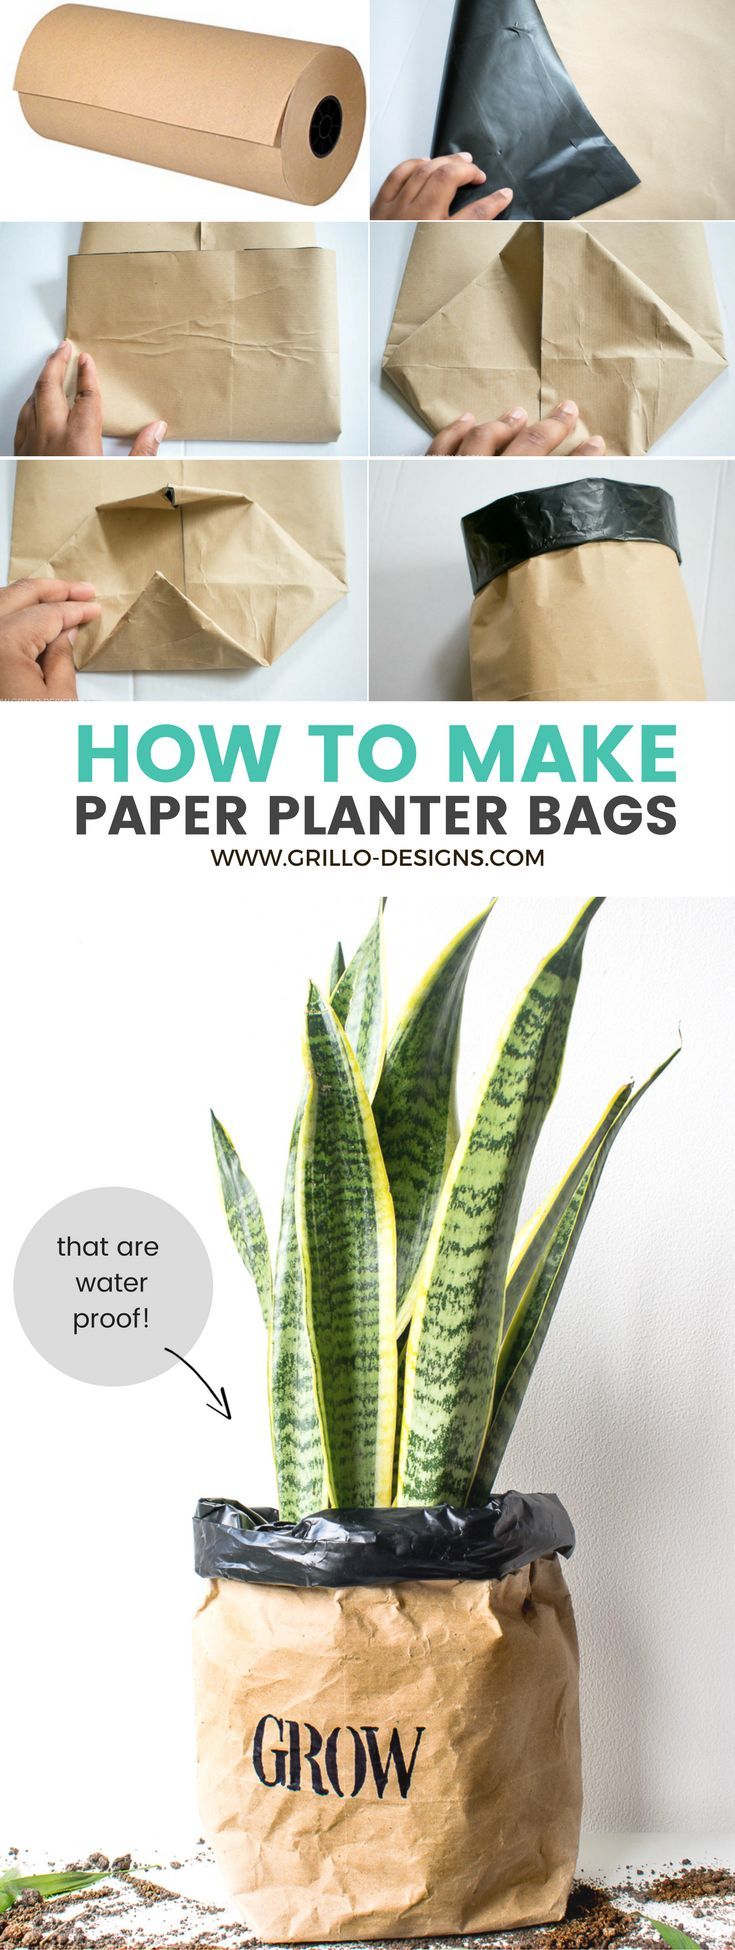 Use kraft paper to make waterproof planter bags for your plants www.grillo-designs.com